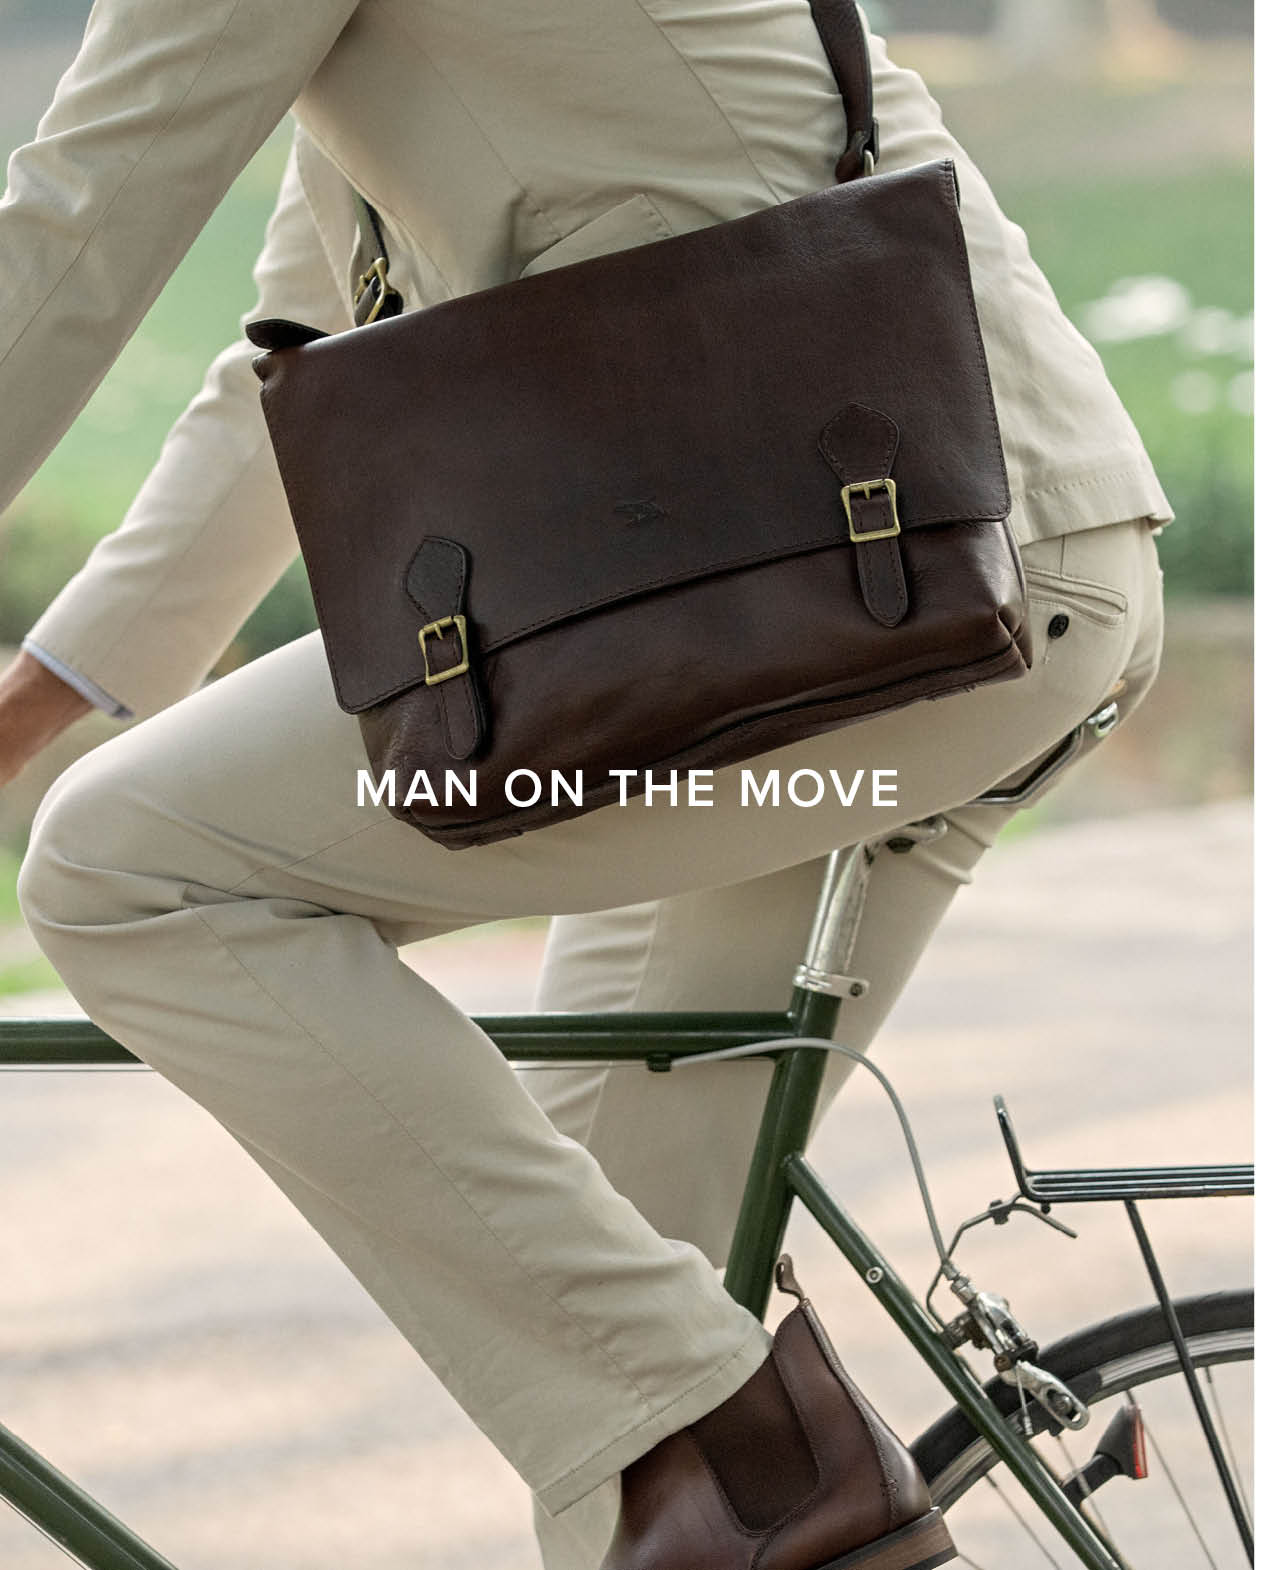 Man on the Move - Motion Jean